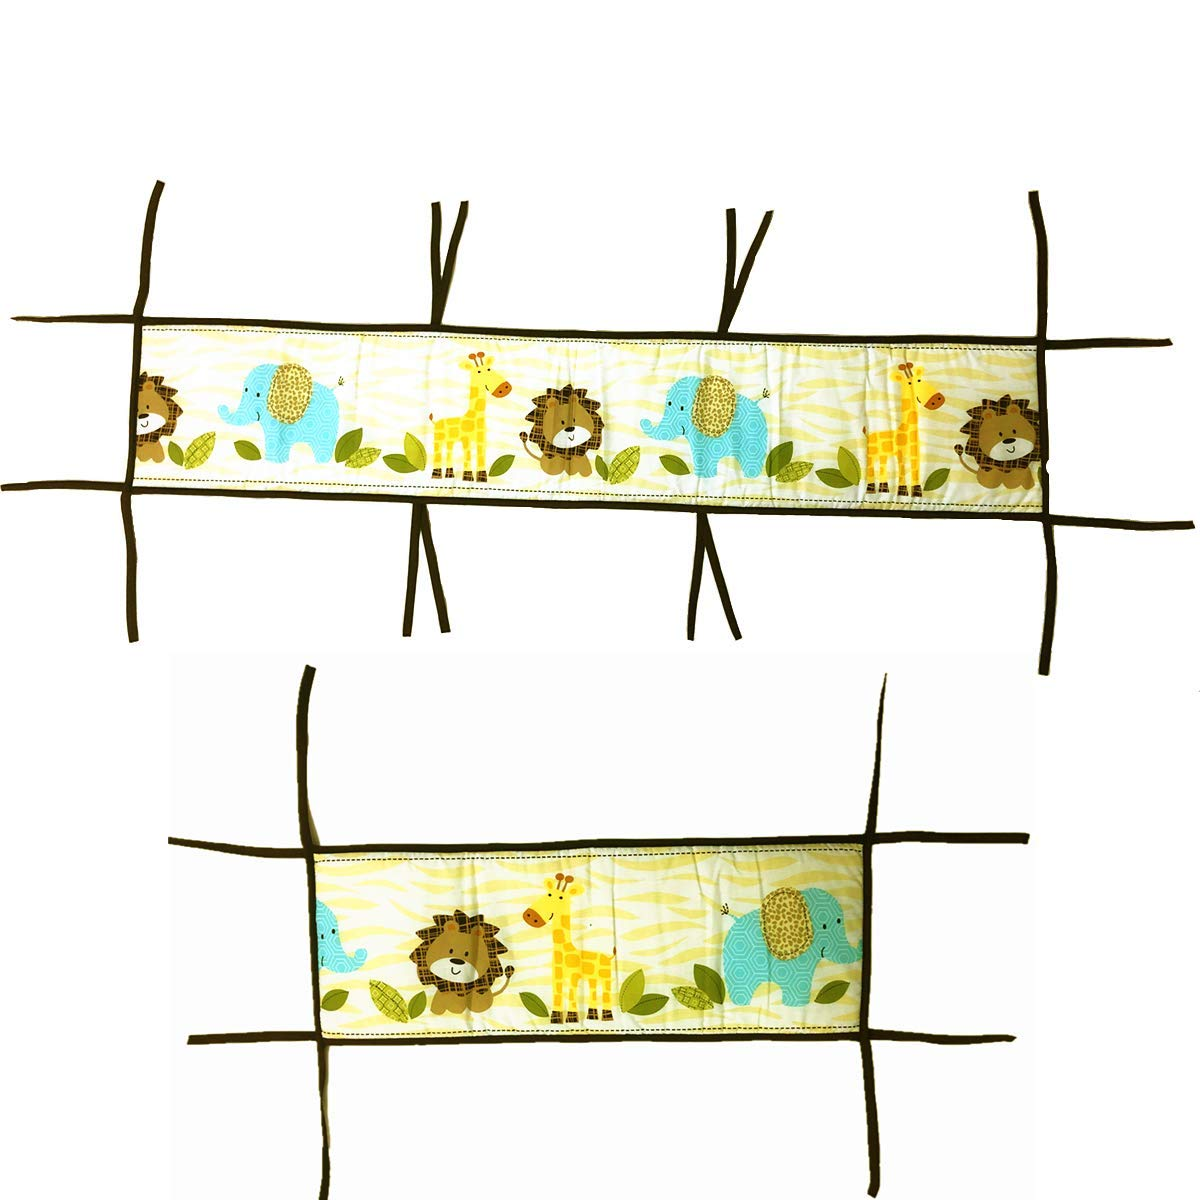 Amomo Crib Bumpers Breathable Baby Bumper Pads 4 Piece for Baby Girl Boy (Light Yellow-Animals) by Amomo